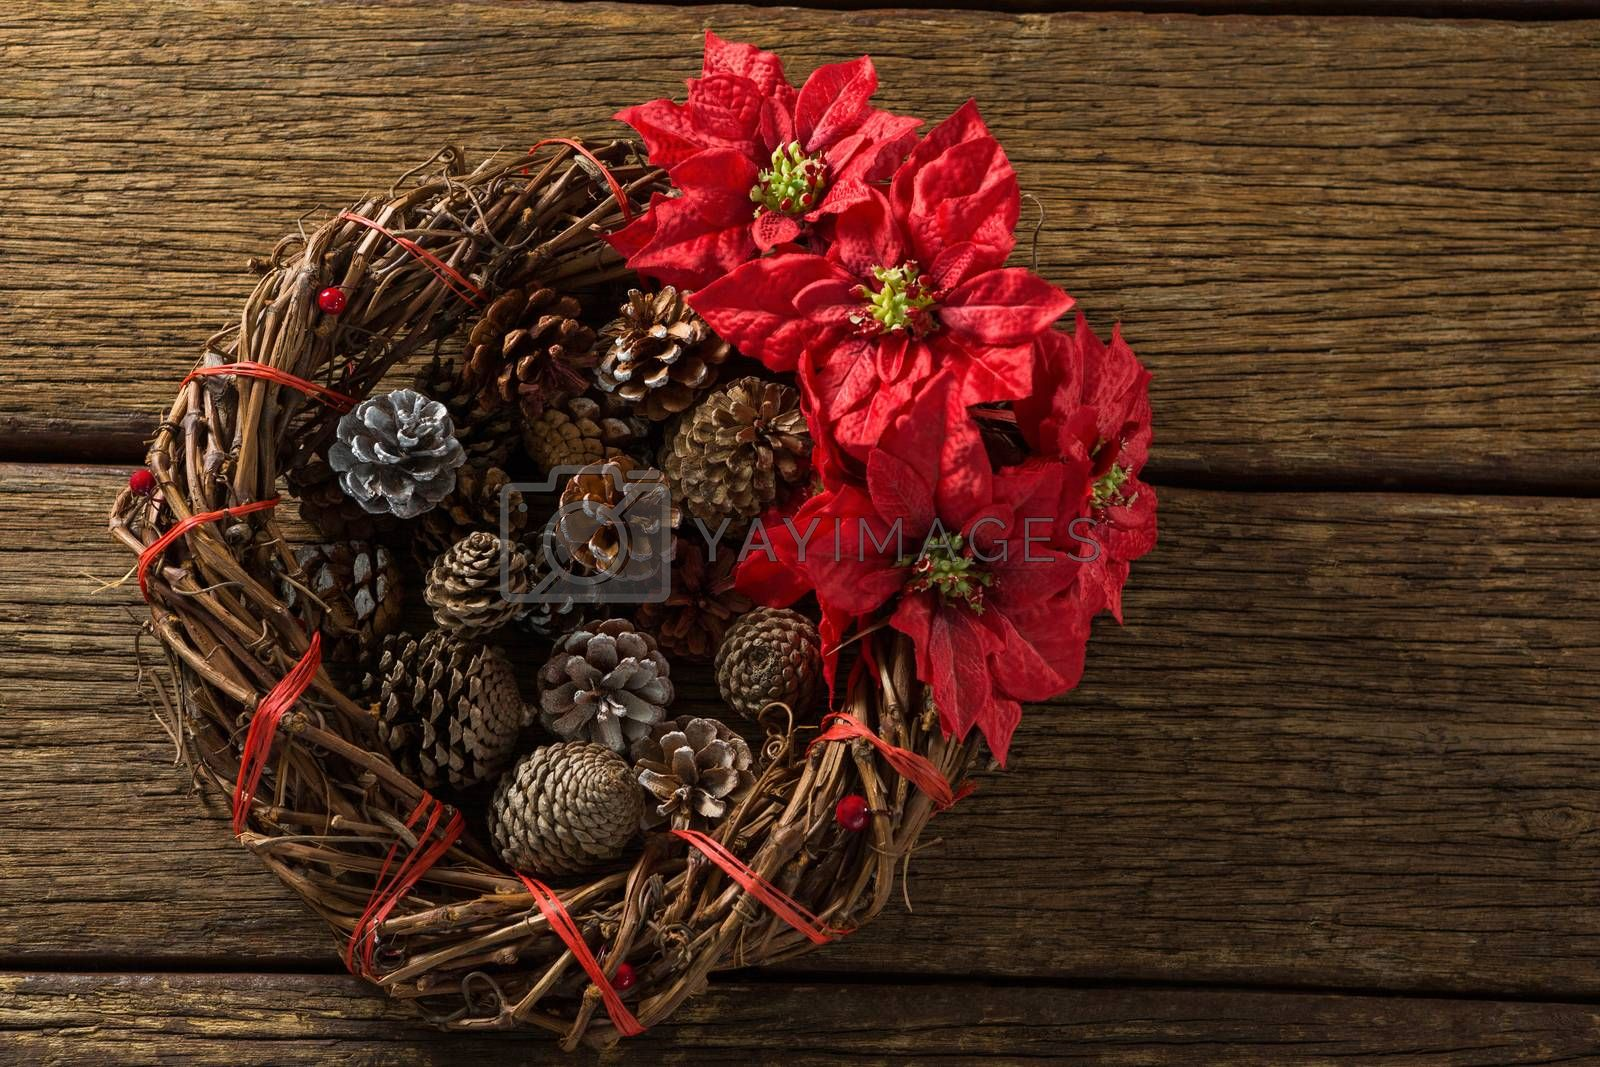 Overhead view of artificial nest with pine cones and poinsettia flowers by Wavebreakmedia